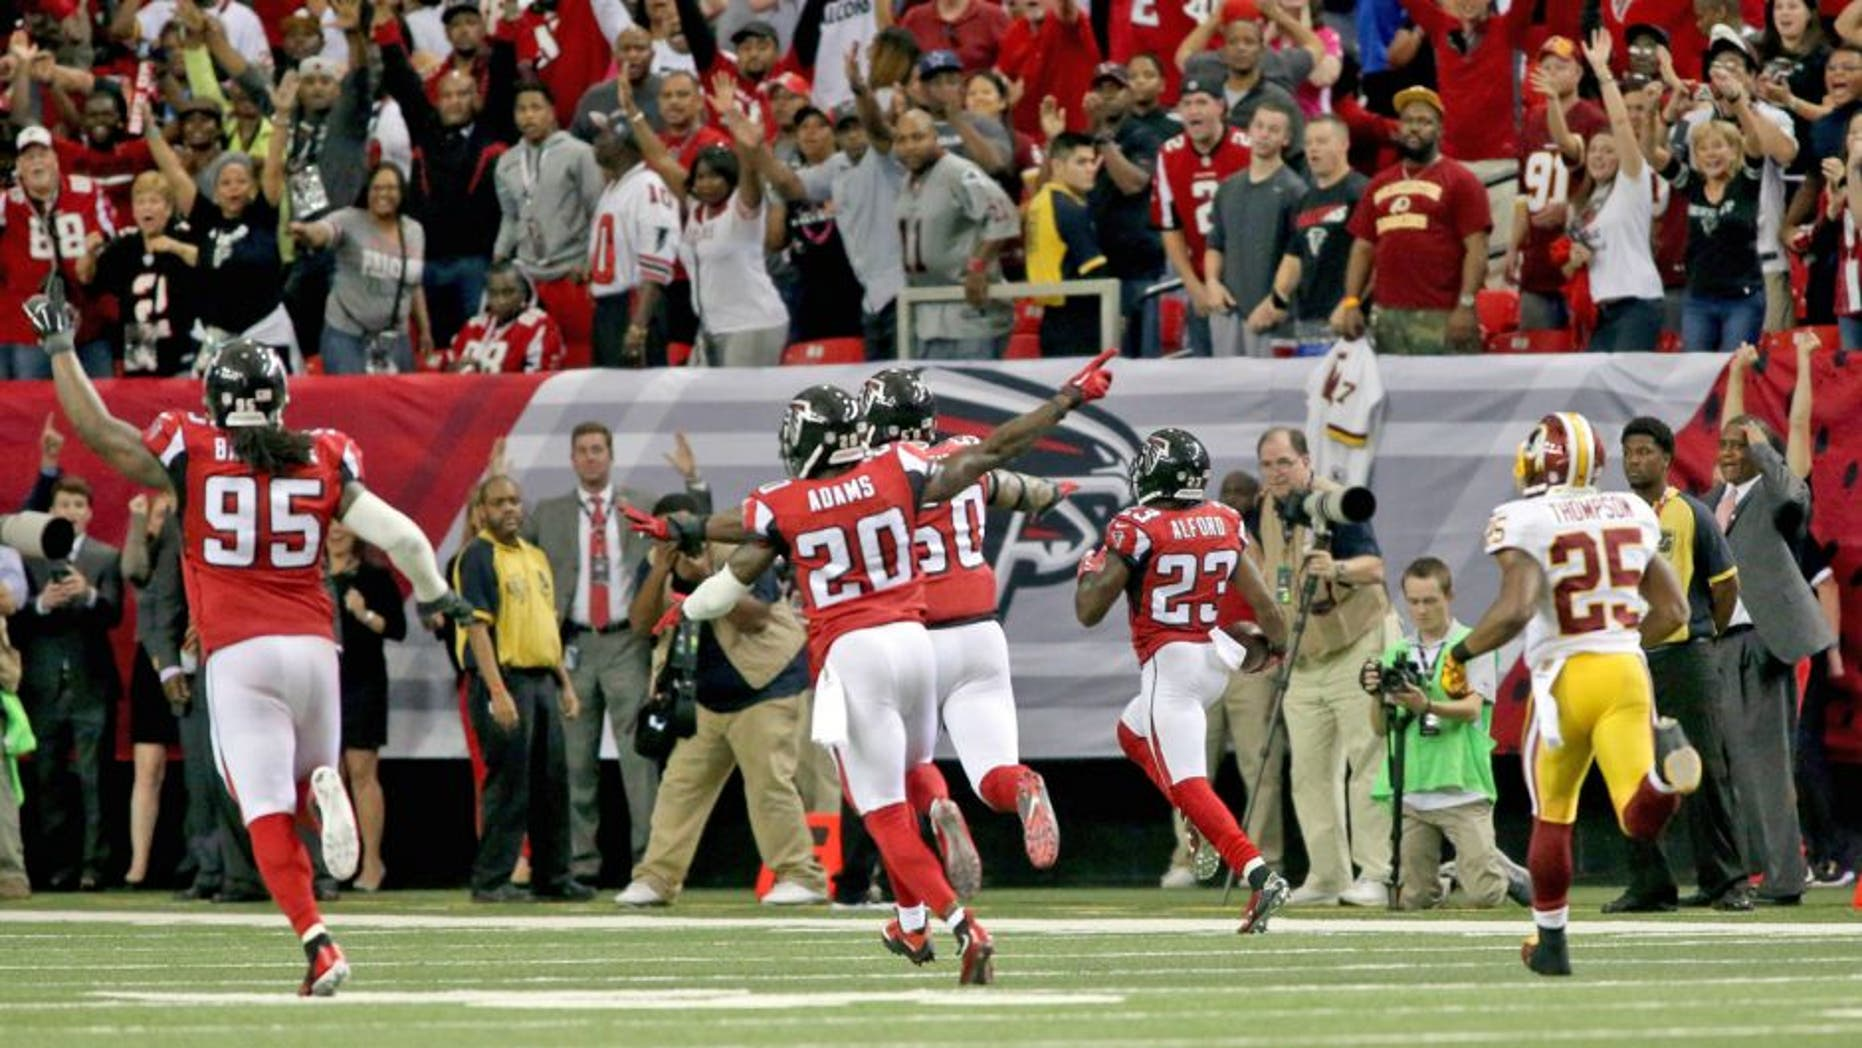 Oct 11, 2015; Atlanta, GA, USA; Atlanta Falcons defensive tackle Jonathan Babineaux (95) and defensive back Phillip Adams (20) celebrate as cornerback Robert Alford (23, right) returns an interception for a touchdown to win the game in overtime against the Washington Redskins at the Georgia Dome. The Falcons won 25-19 in overtime. Mandatory Credit: Jason Getz-USA TODAY Sports